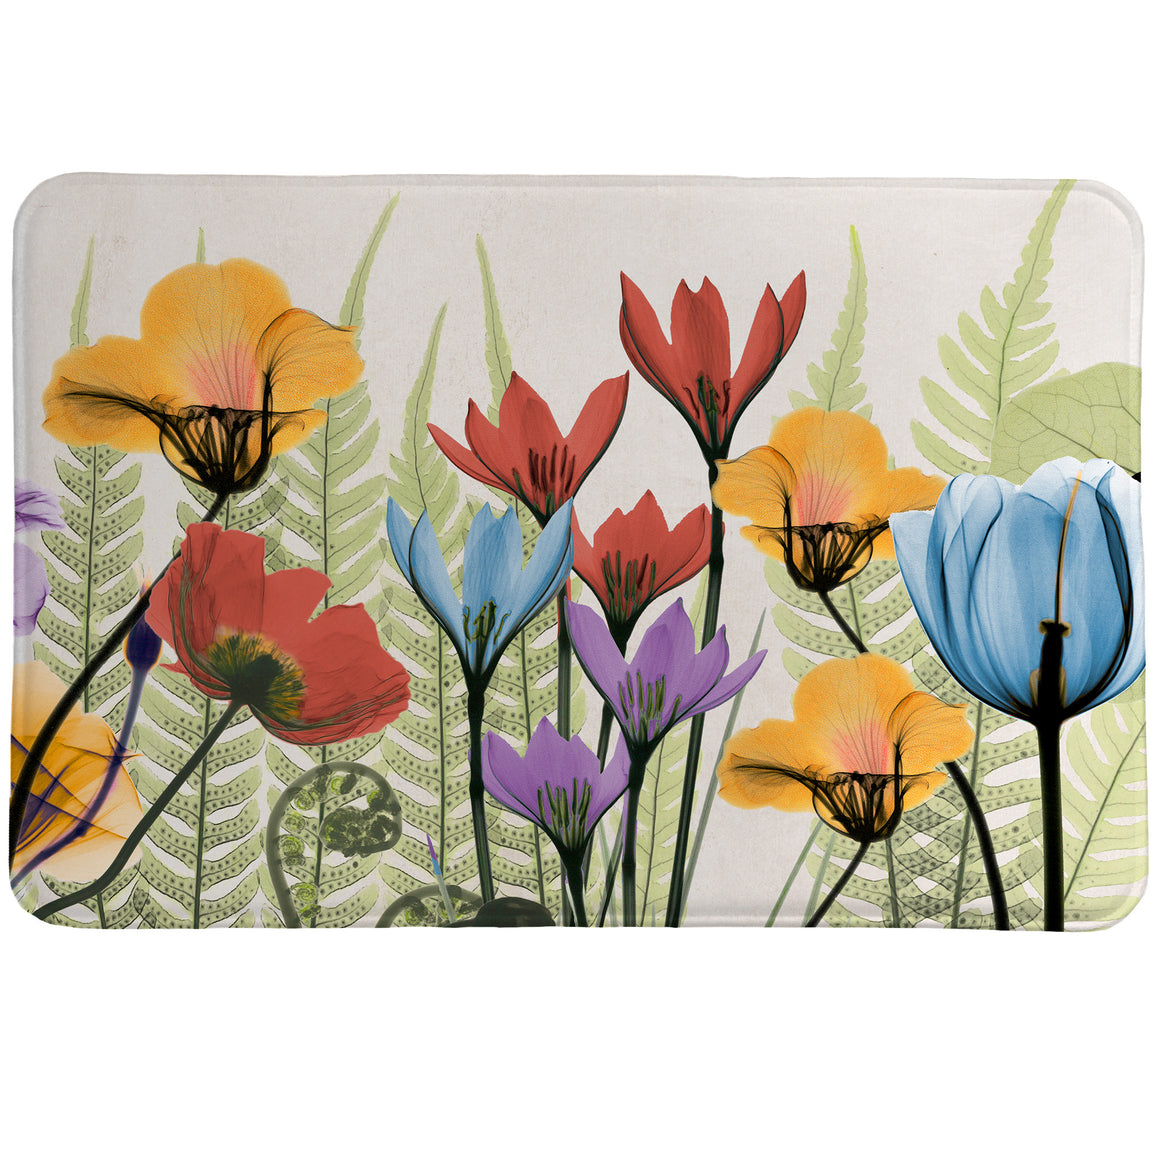 Flourishing Botanicals Memory Foam Rug features a beautiful floral arrangement created using a special technique using an x-ray machine and flowers.